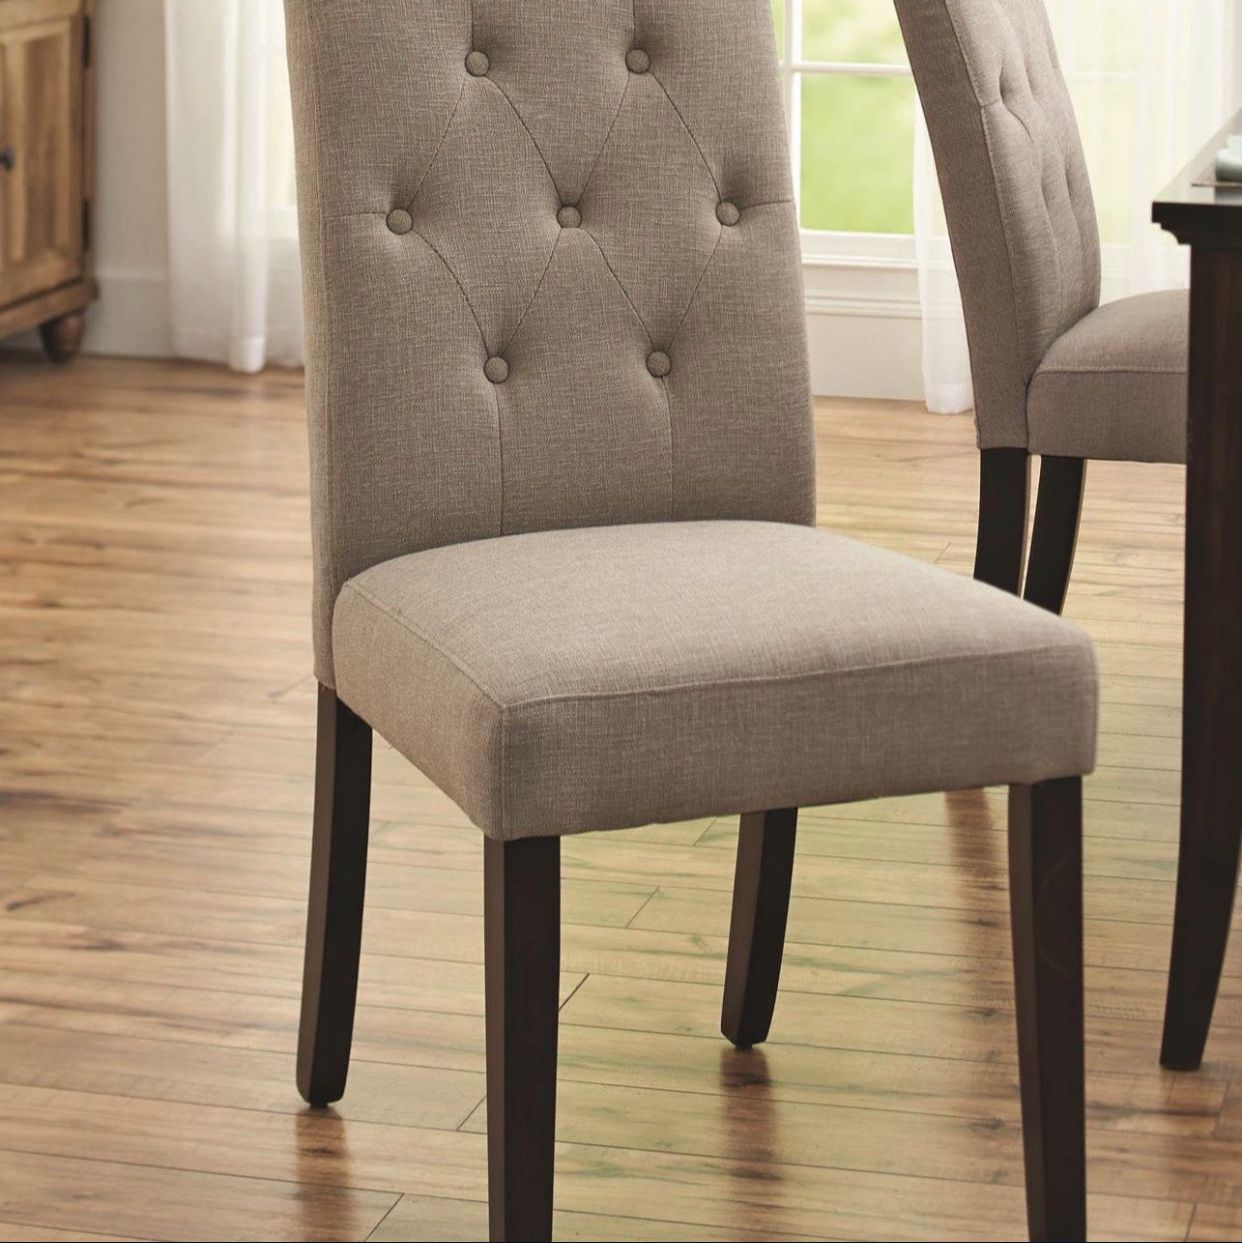 Brand New Contemporary Upholstered Tufted Dining Side Chair